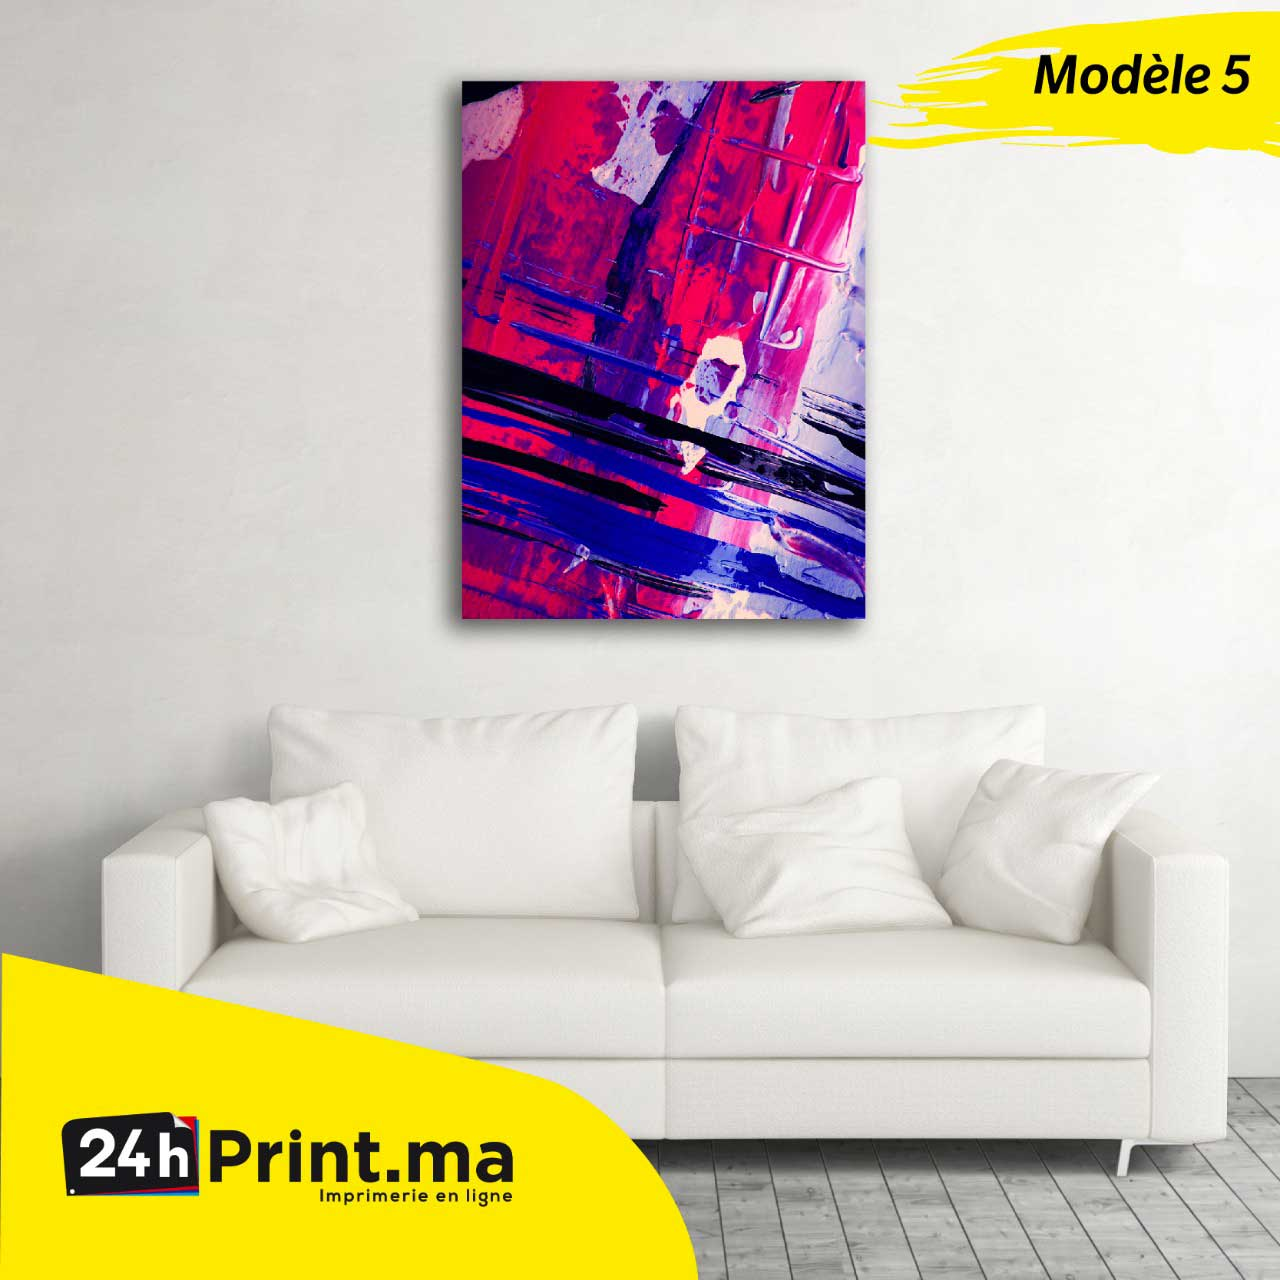 https://www.24hprint.ma/images/products_gallery_images/550.jpg